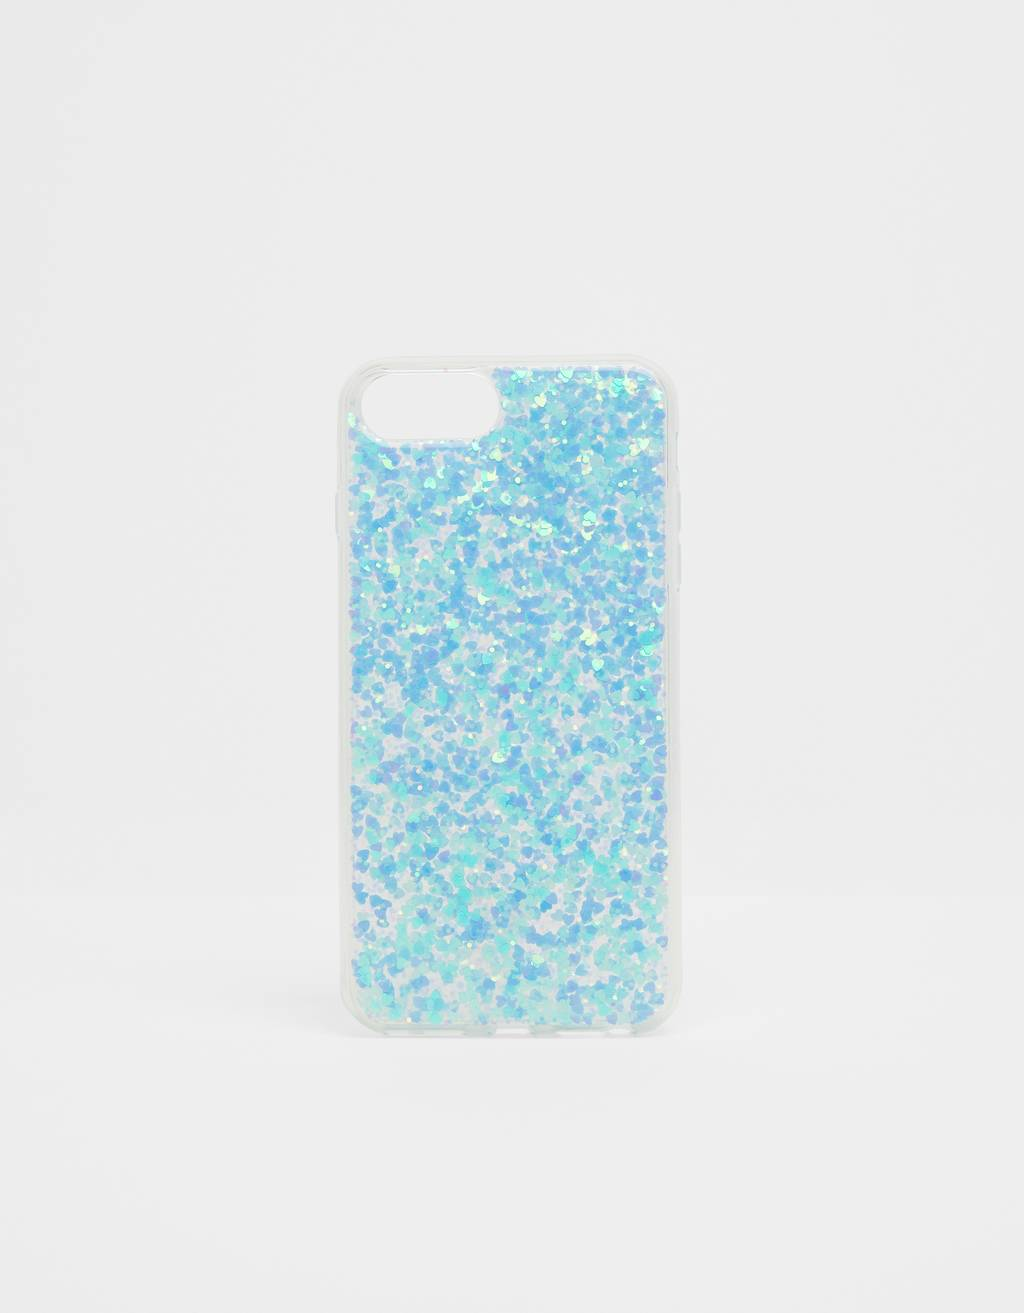 Glitter iPhone 6 plus / 6S Plus / 7 Plus / 8 plus case